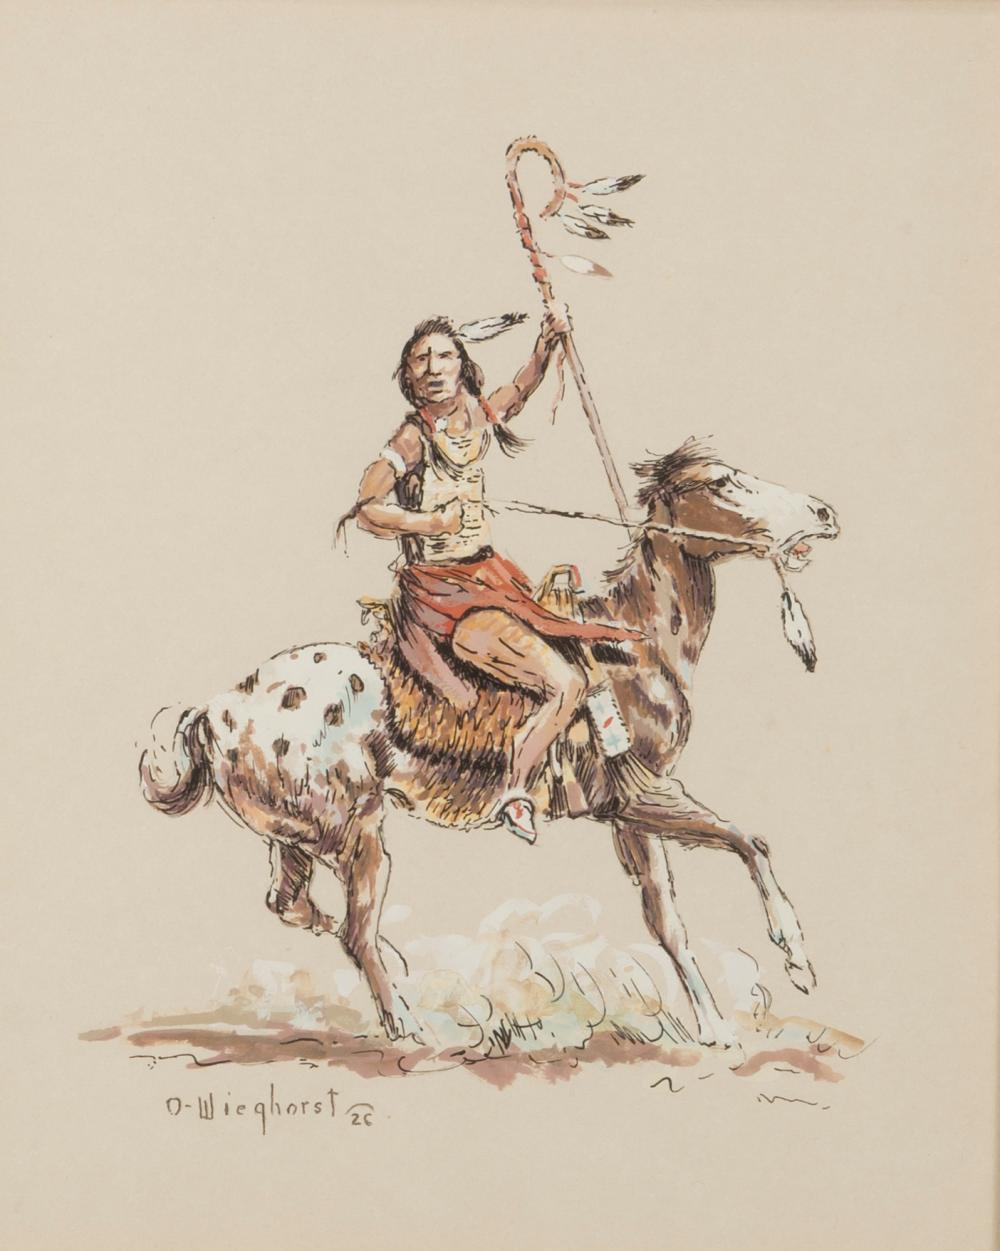 "Olaf Wieghorst, (1899-1988 El Cajon, CA), American Indian on horseback, Gouache and pen on paper under glass, Sight: 11.25"" H x 9.25"" W"